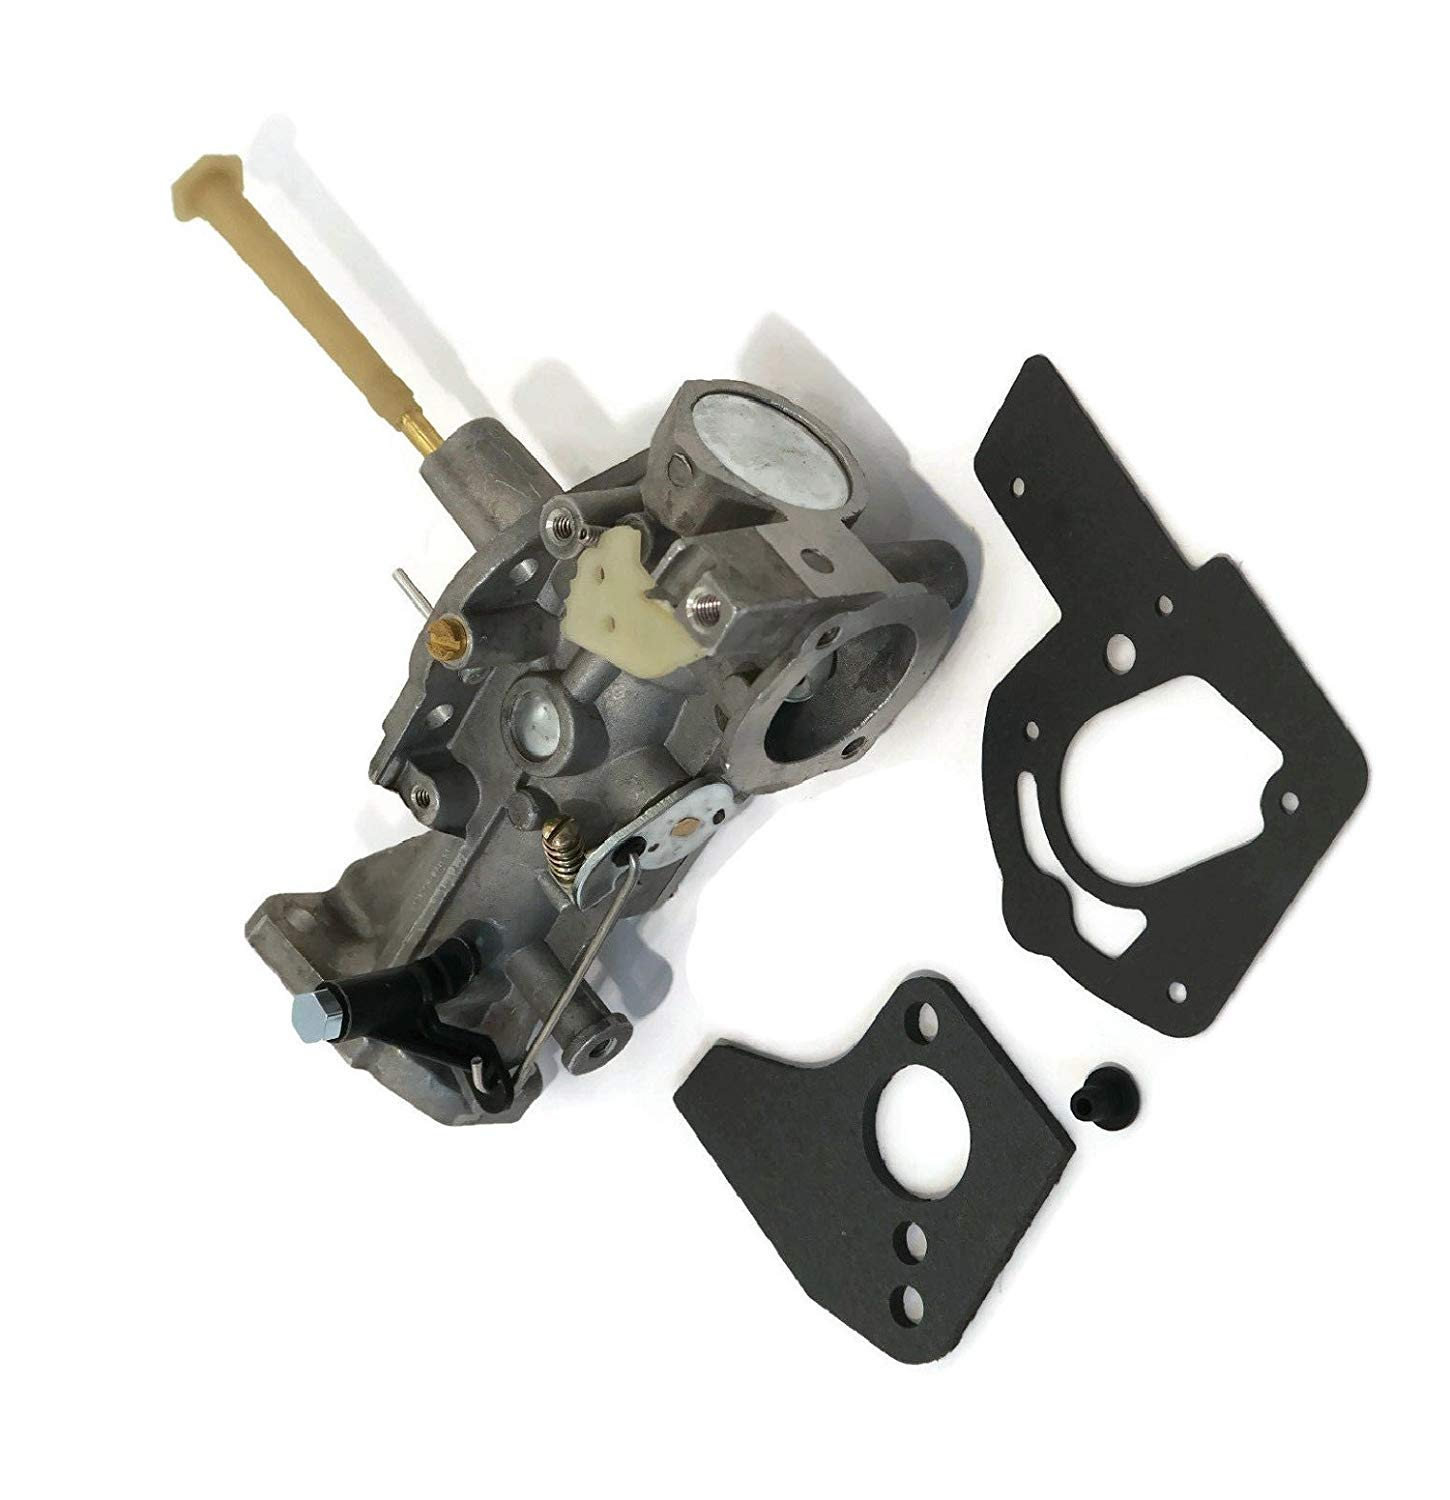 Carburetor For Briggs & Stratton 495459 Carburetor Replaces 492645, 490524 498298 692784 495951 492611 490533 495426